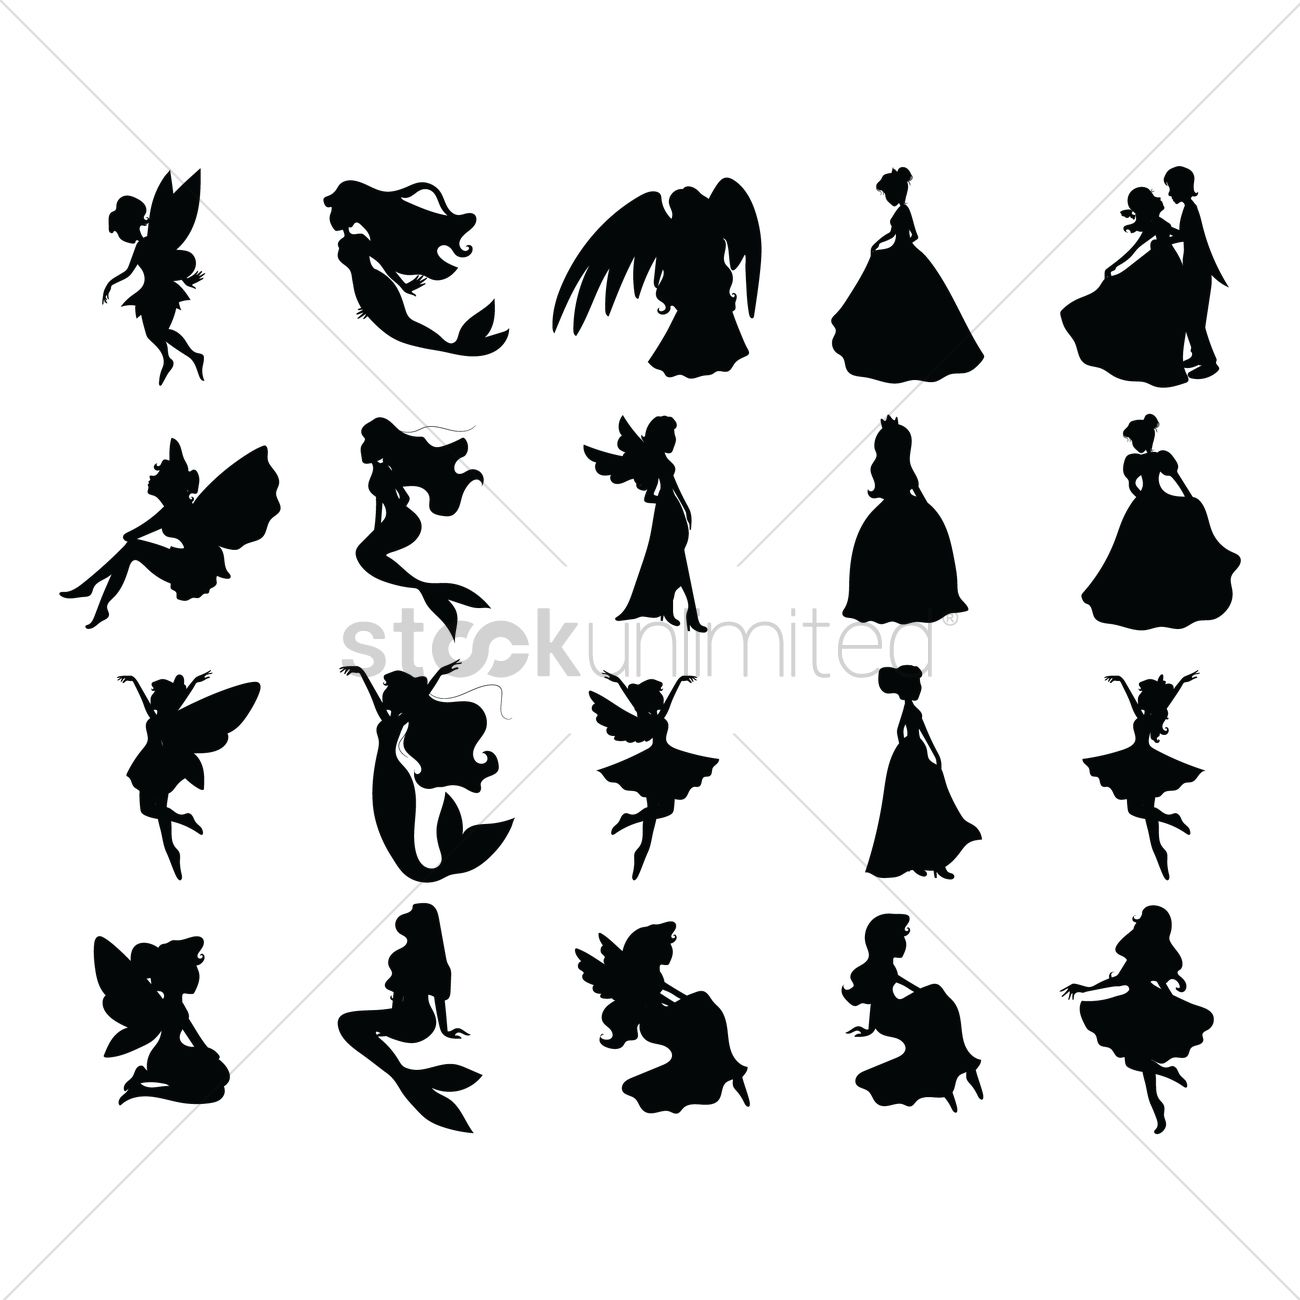 Fairy Tale Silhouettes Vector Image - 1414169